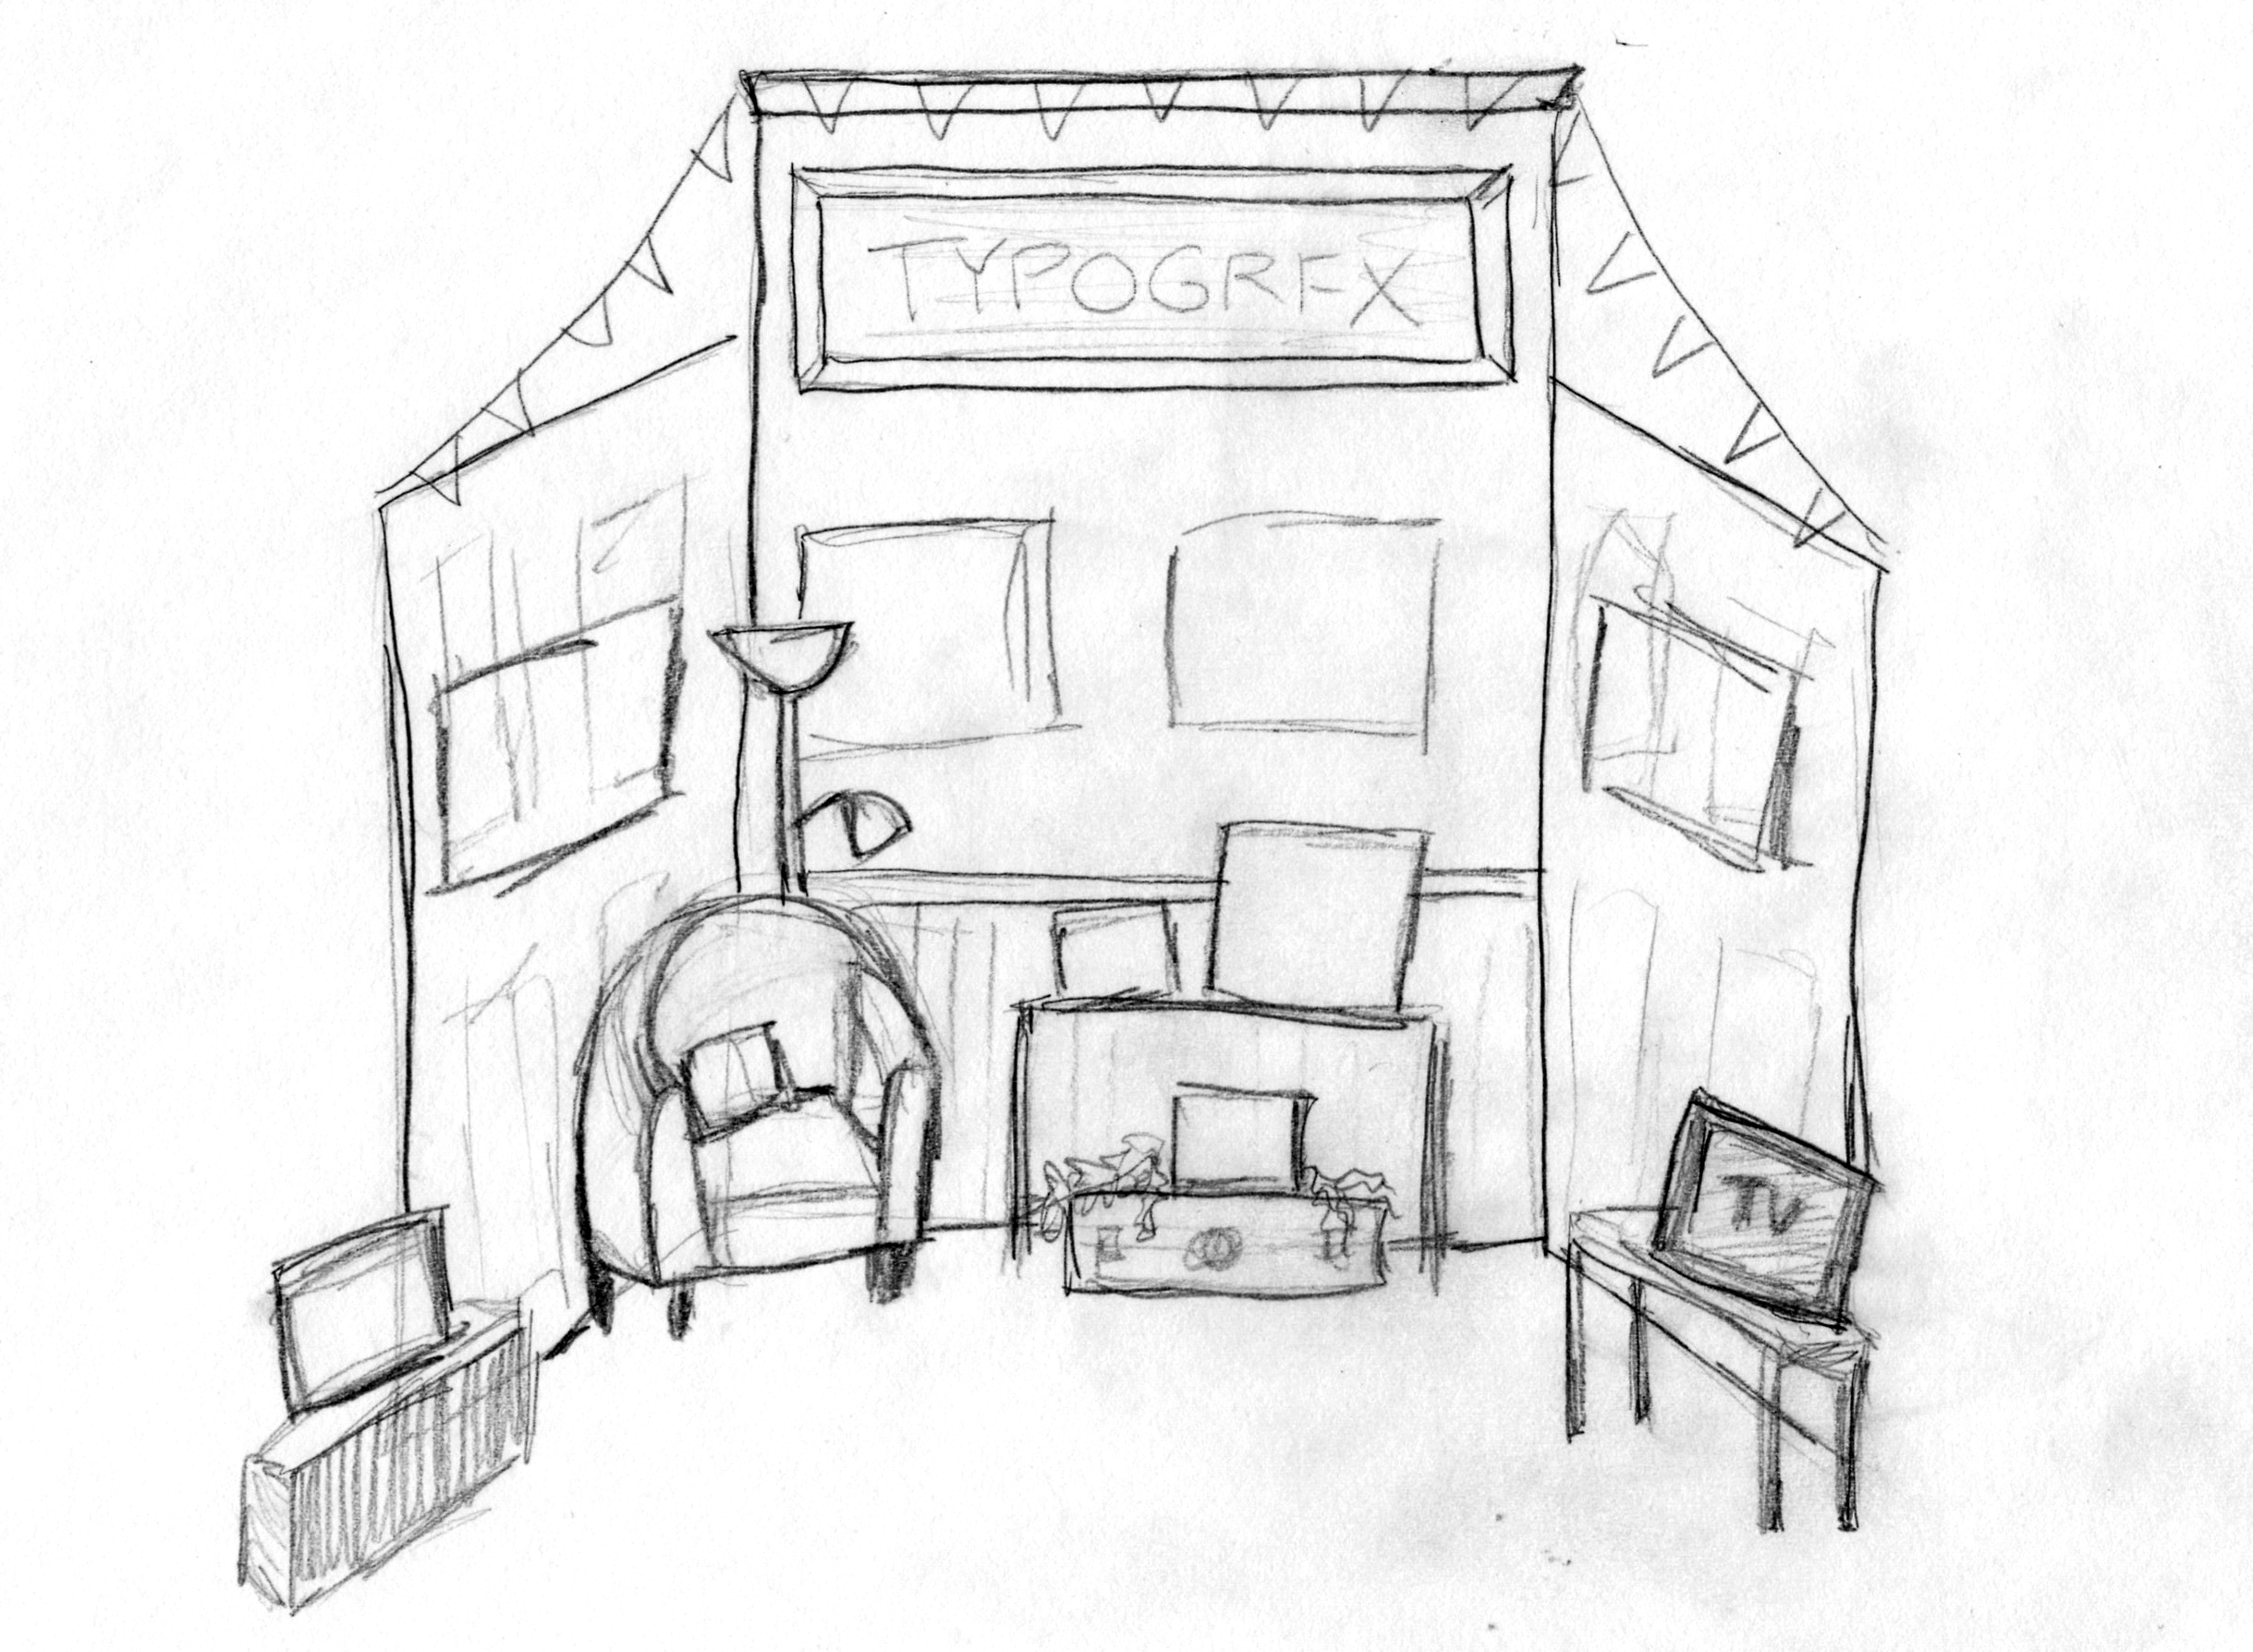 booth sketch